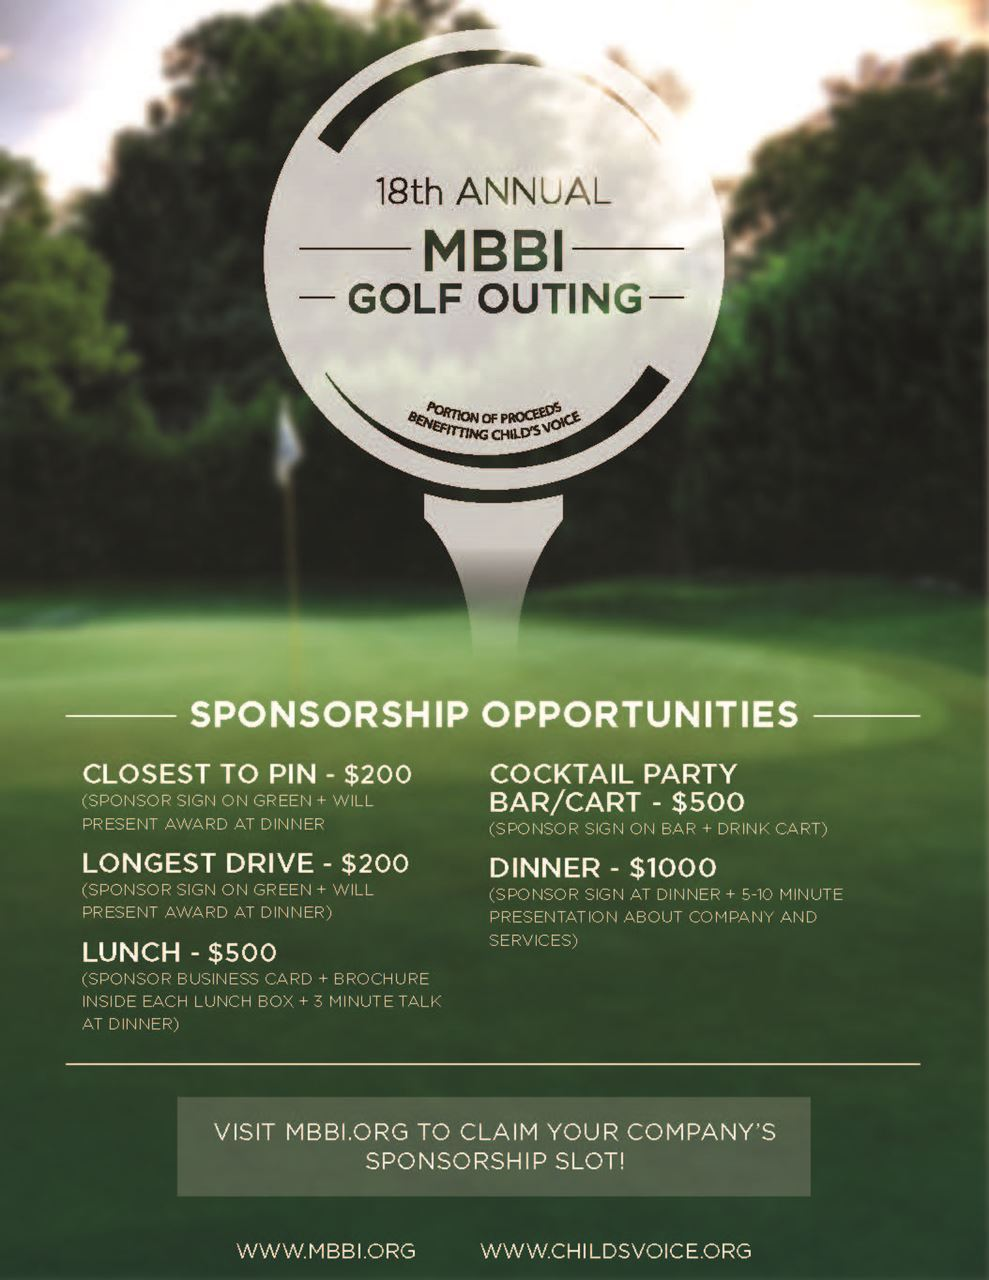 MBBI - 18th Annual MBBI Golf Outing